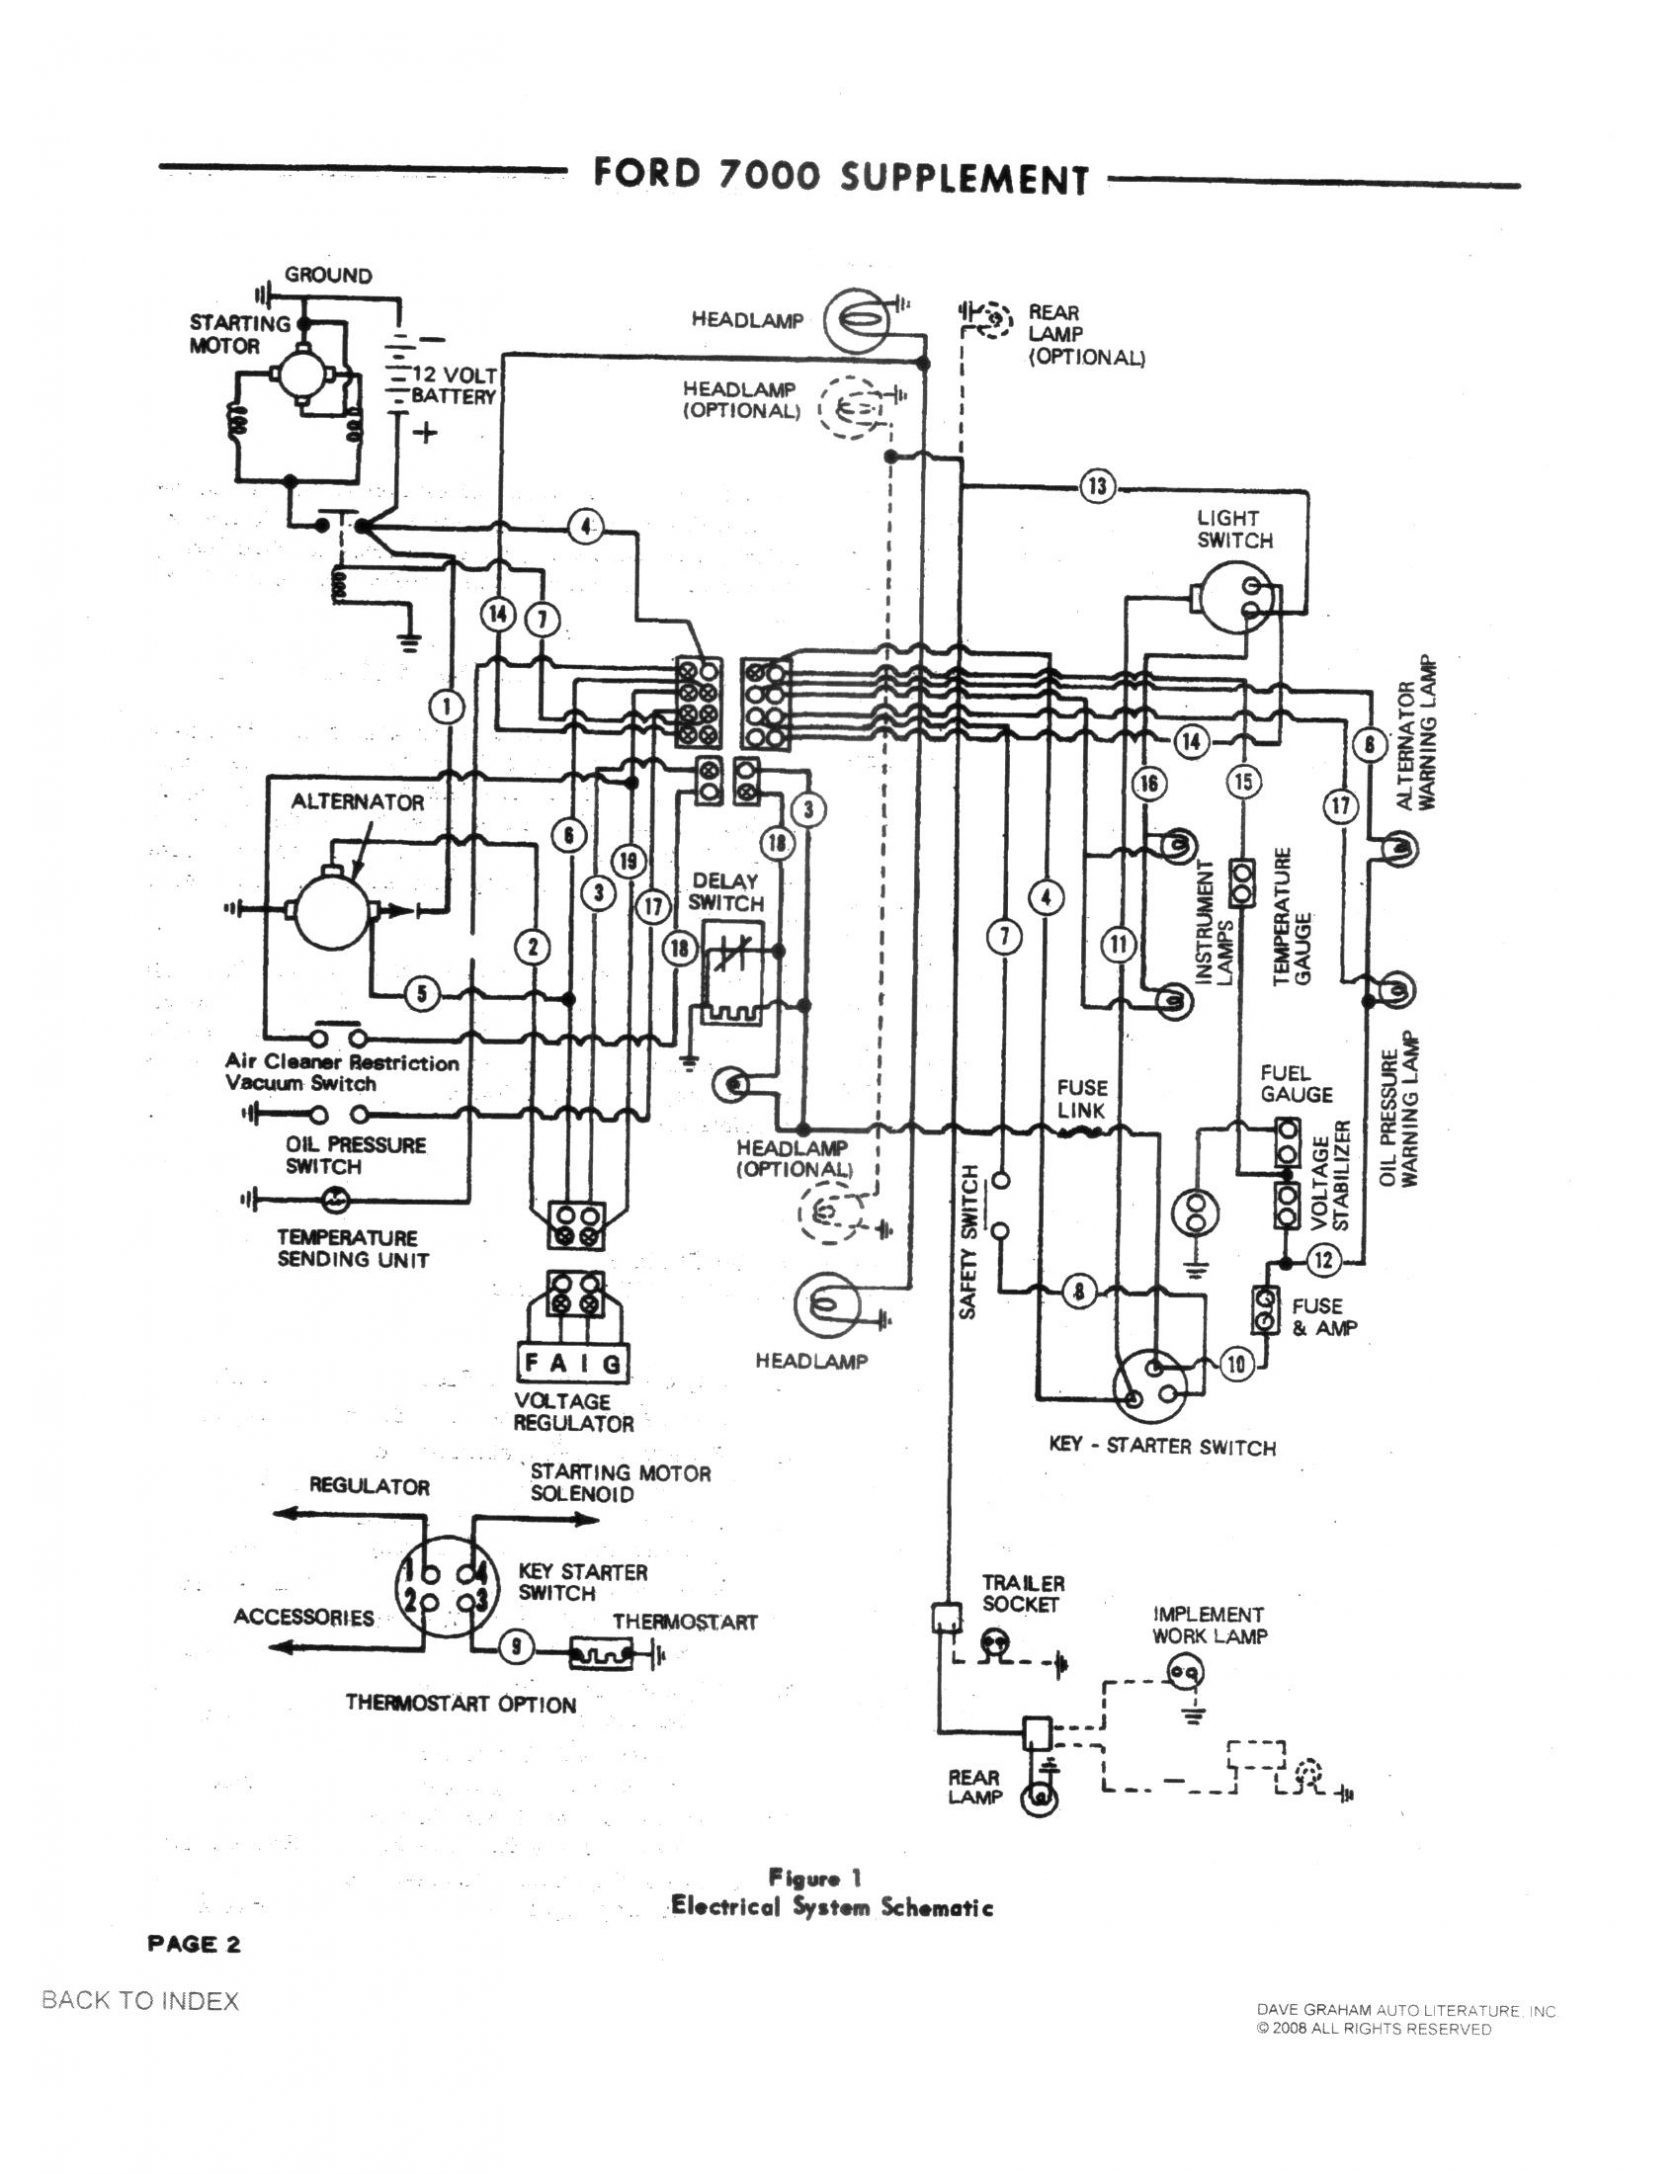 12 Volt Alternator Wiring Schematic | Free Wiring Diagram  Volt Alternater Wiring Schematic on electric schematic, compressor schematic, trailer schematic,